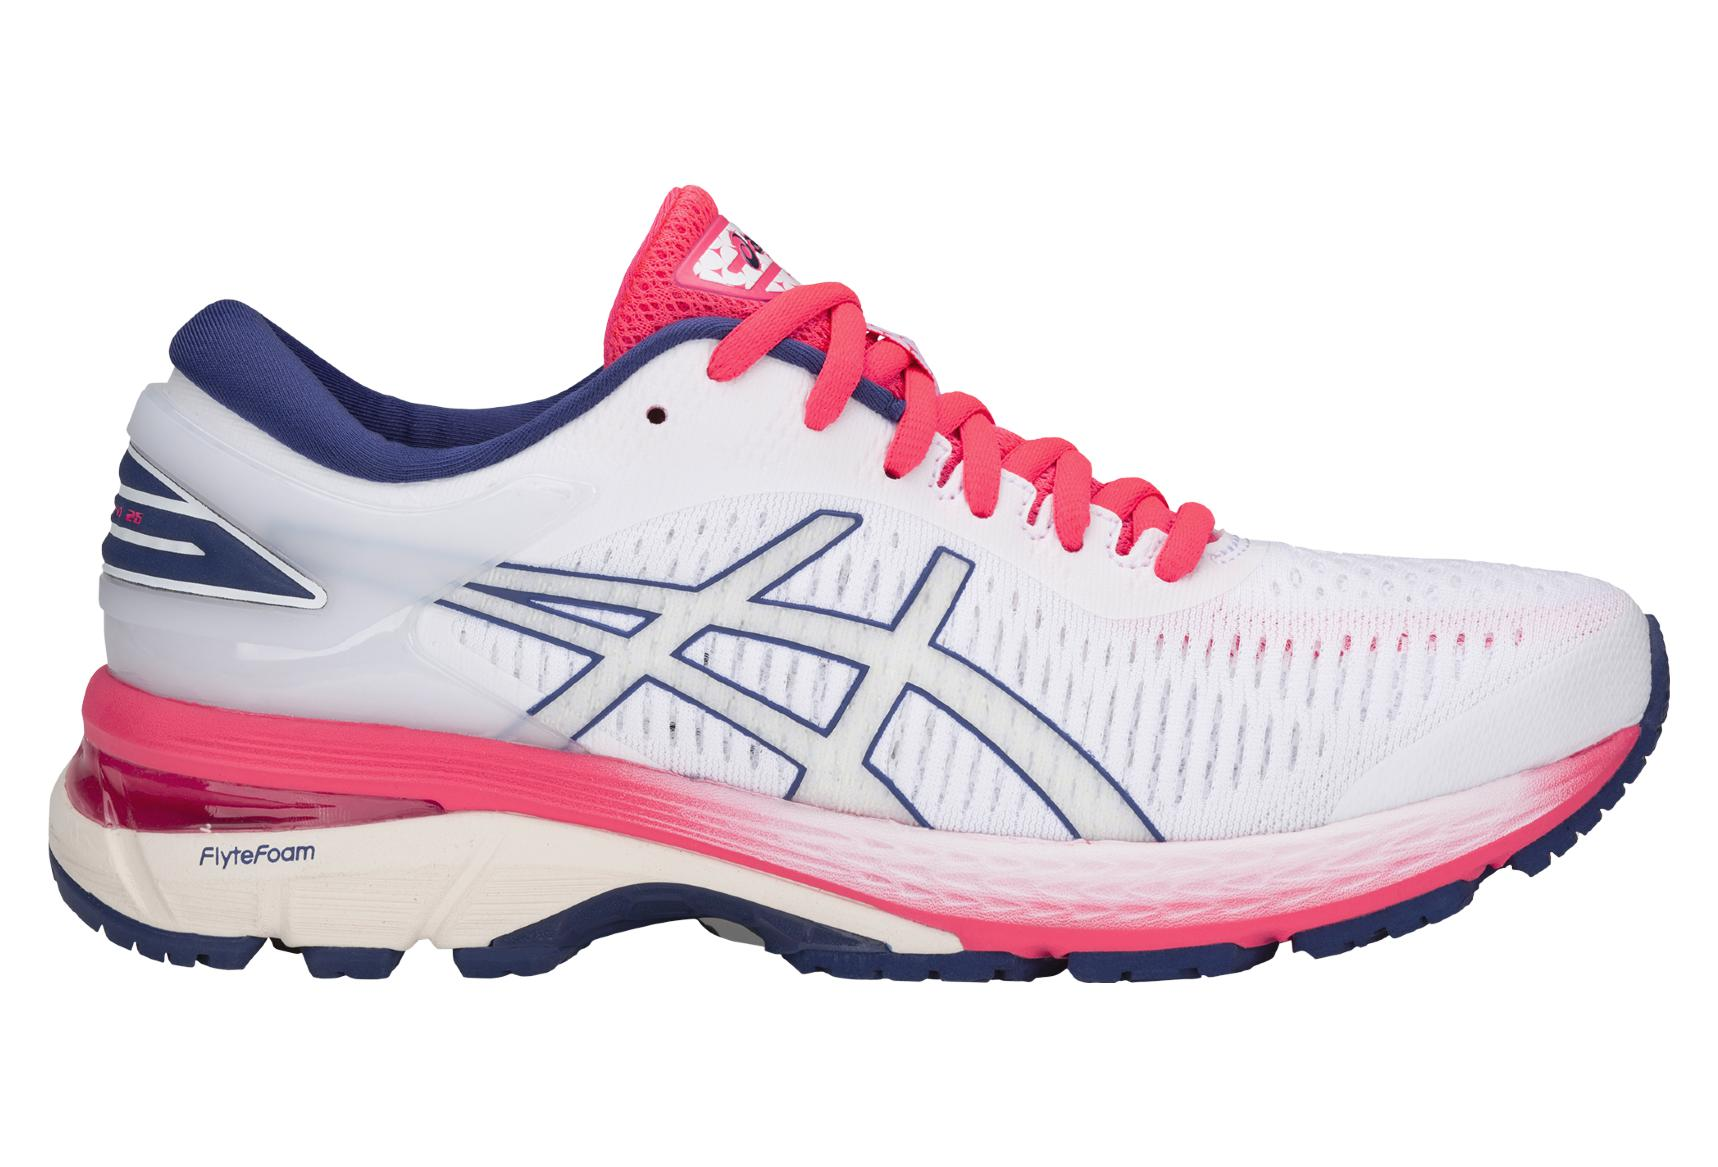 cfc200ff5d88 Scarpe da Running Asics Gel-Kayano 25 Bianco da Donna | Alltricks.it